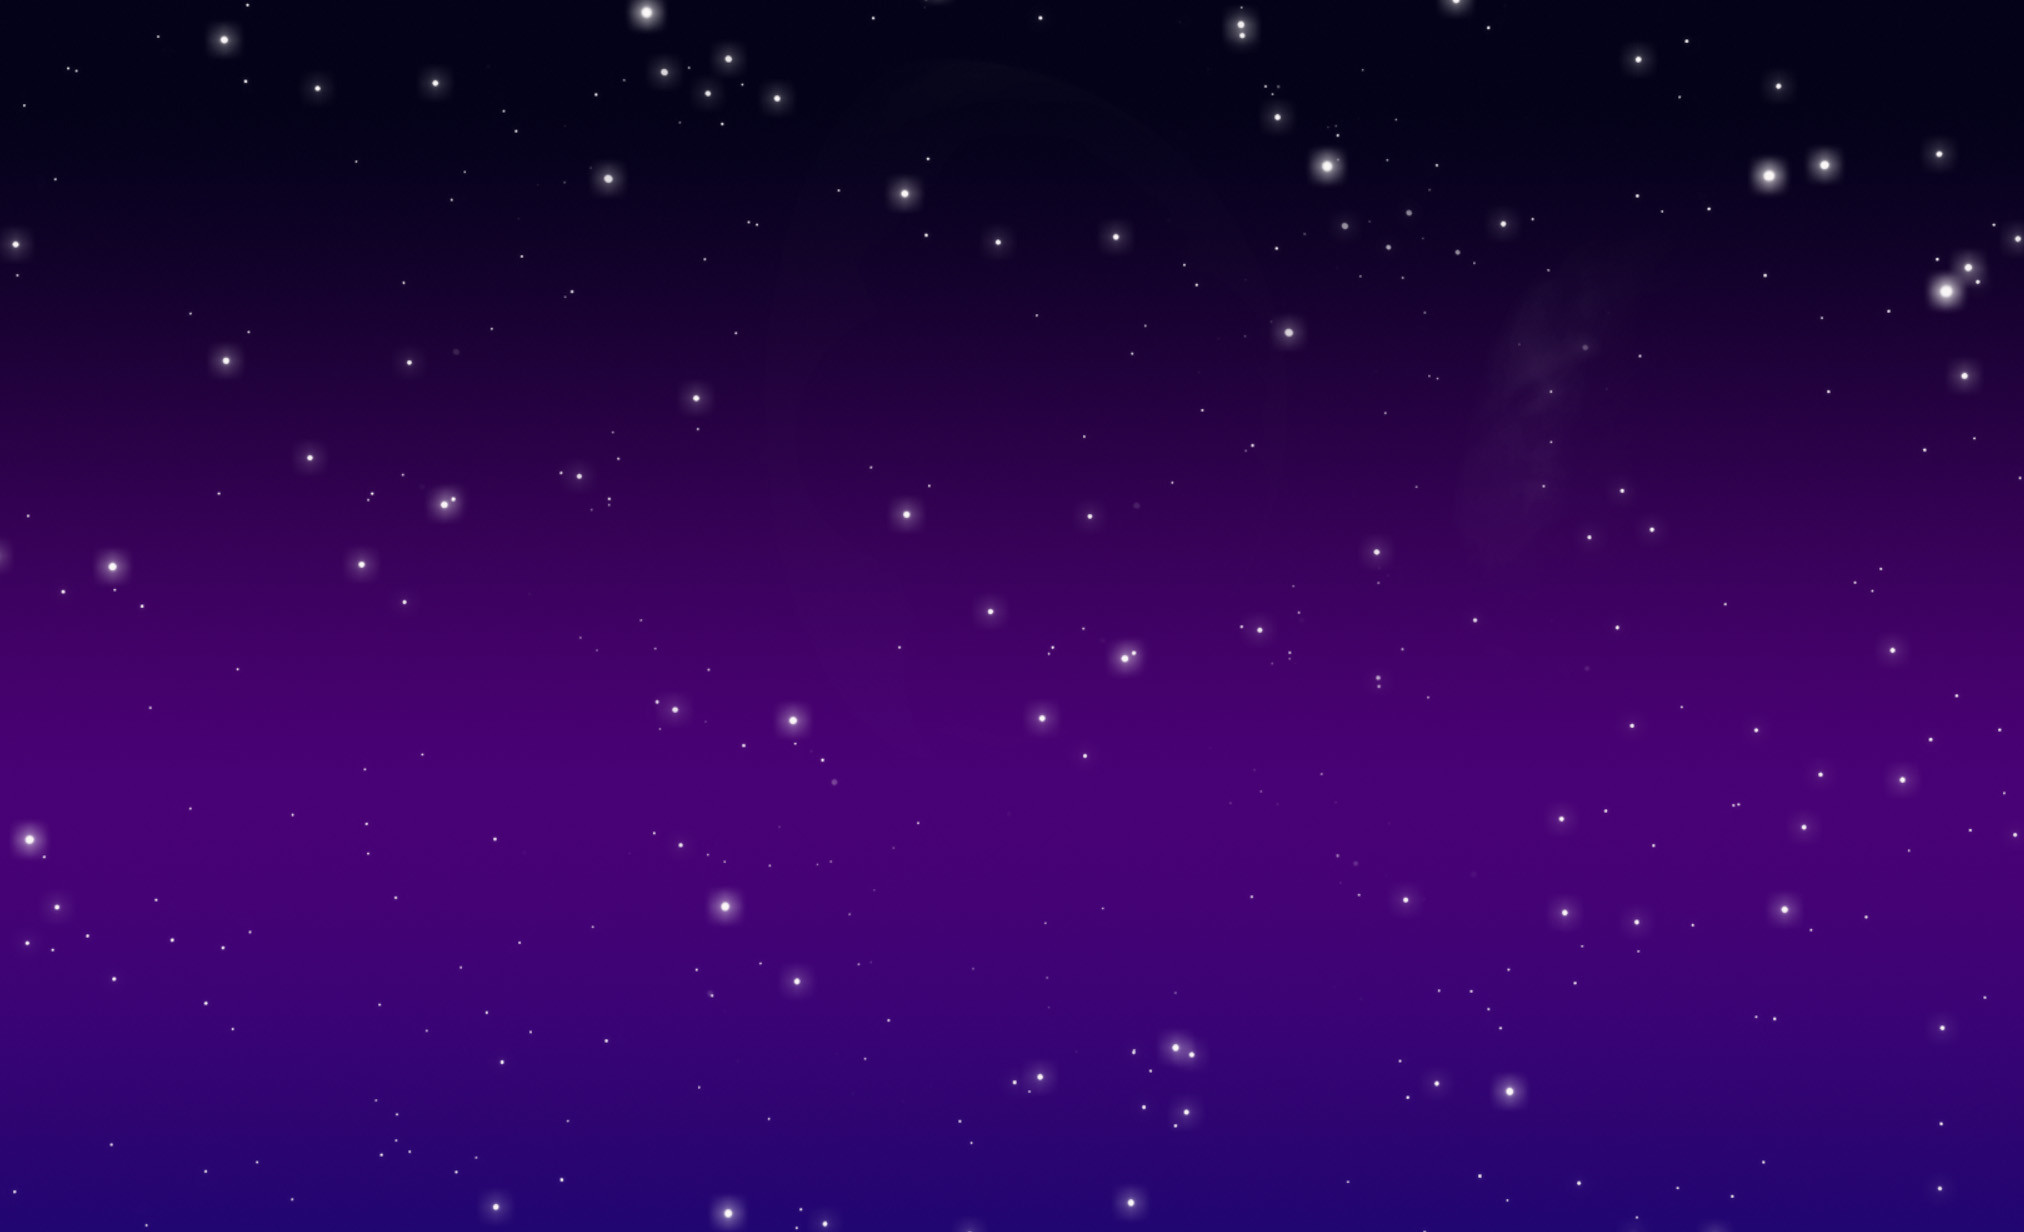 2024x1232 ... FREE:Purple Space Background by Magical-Mama